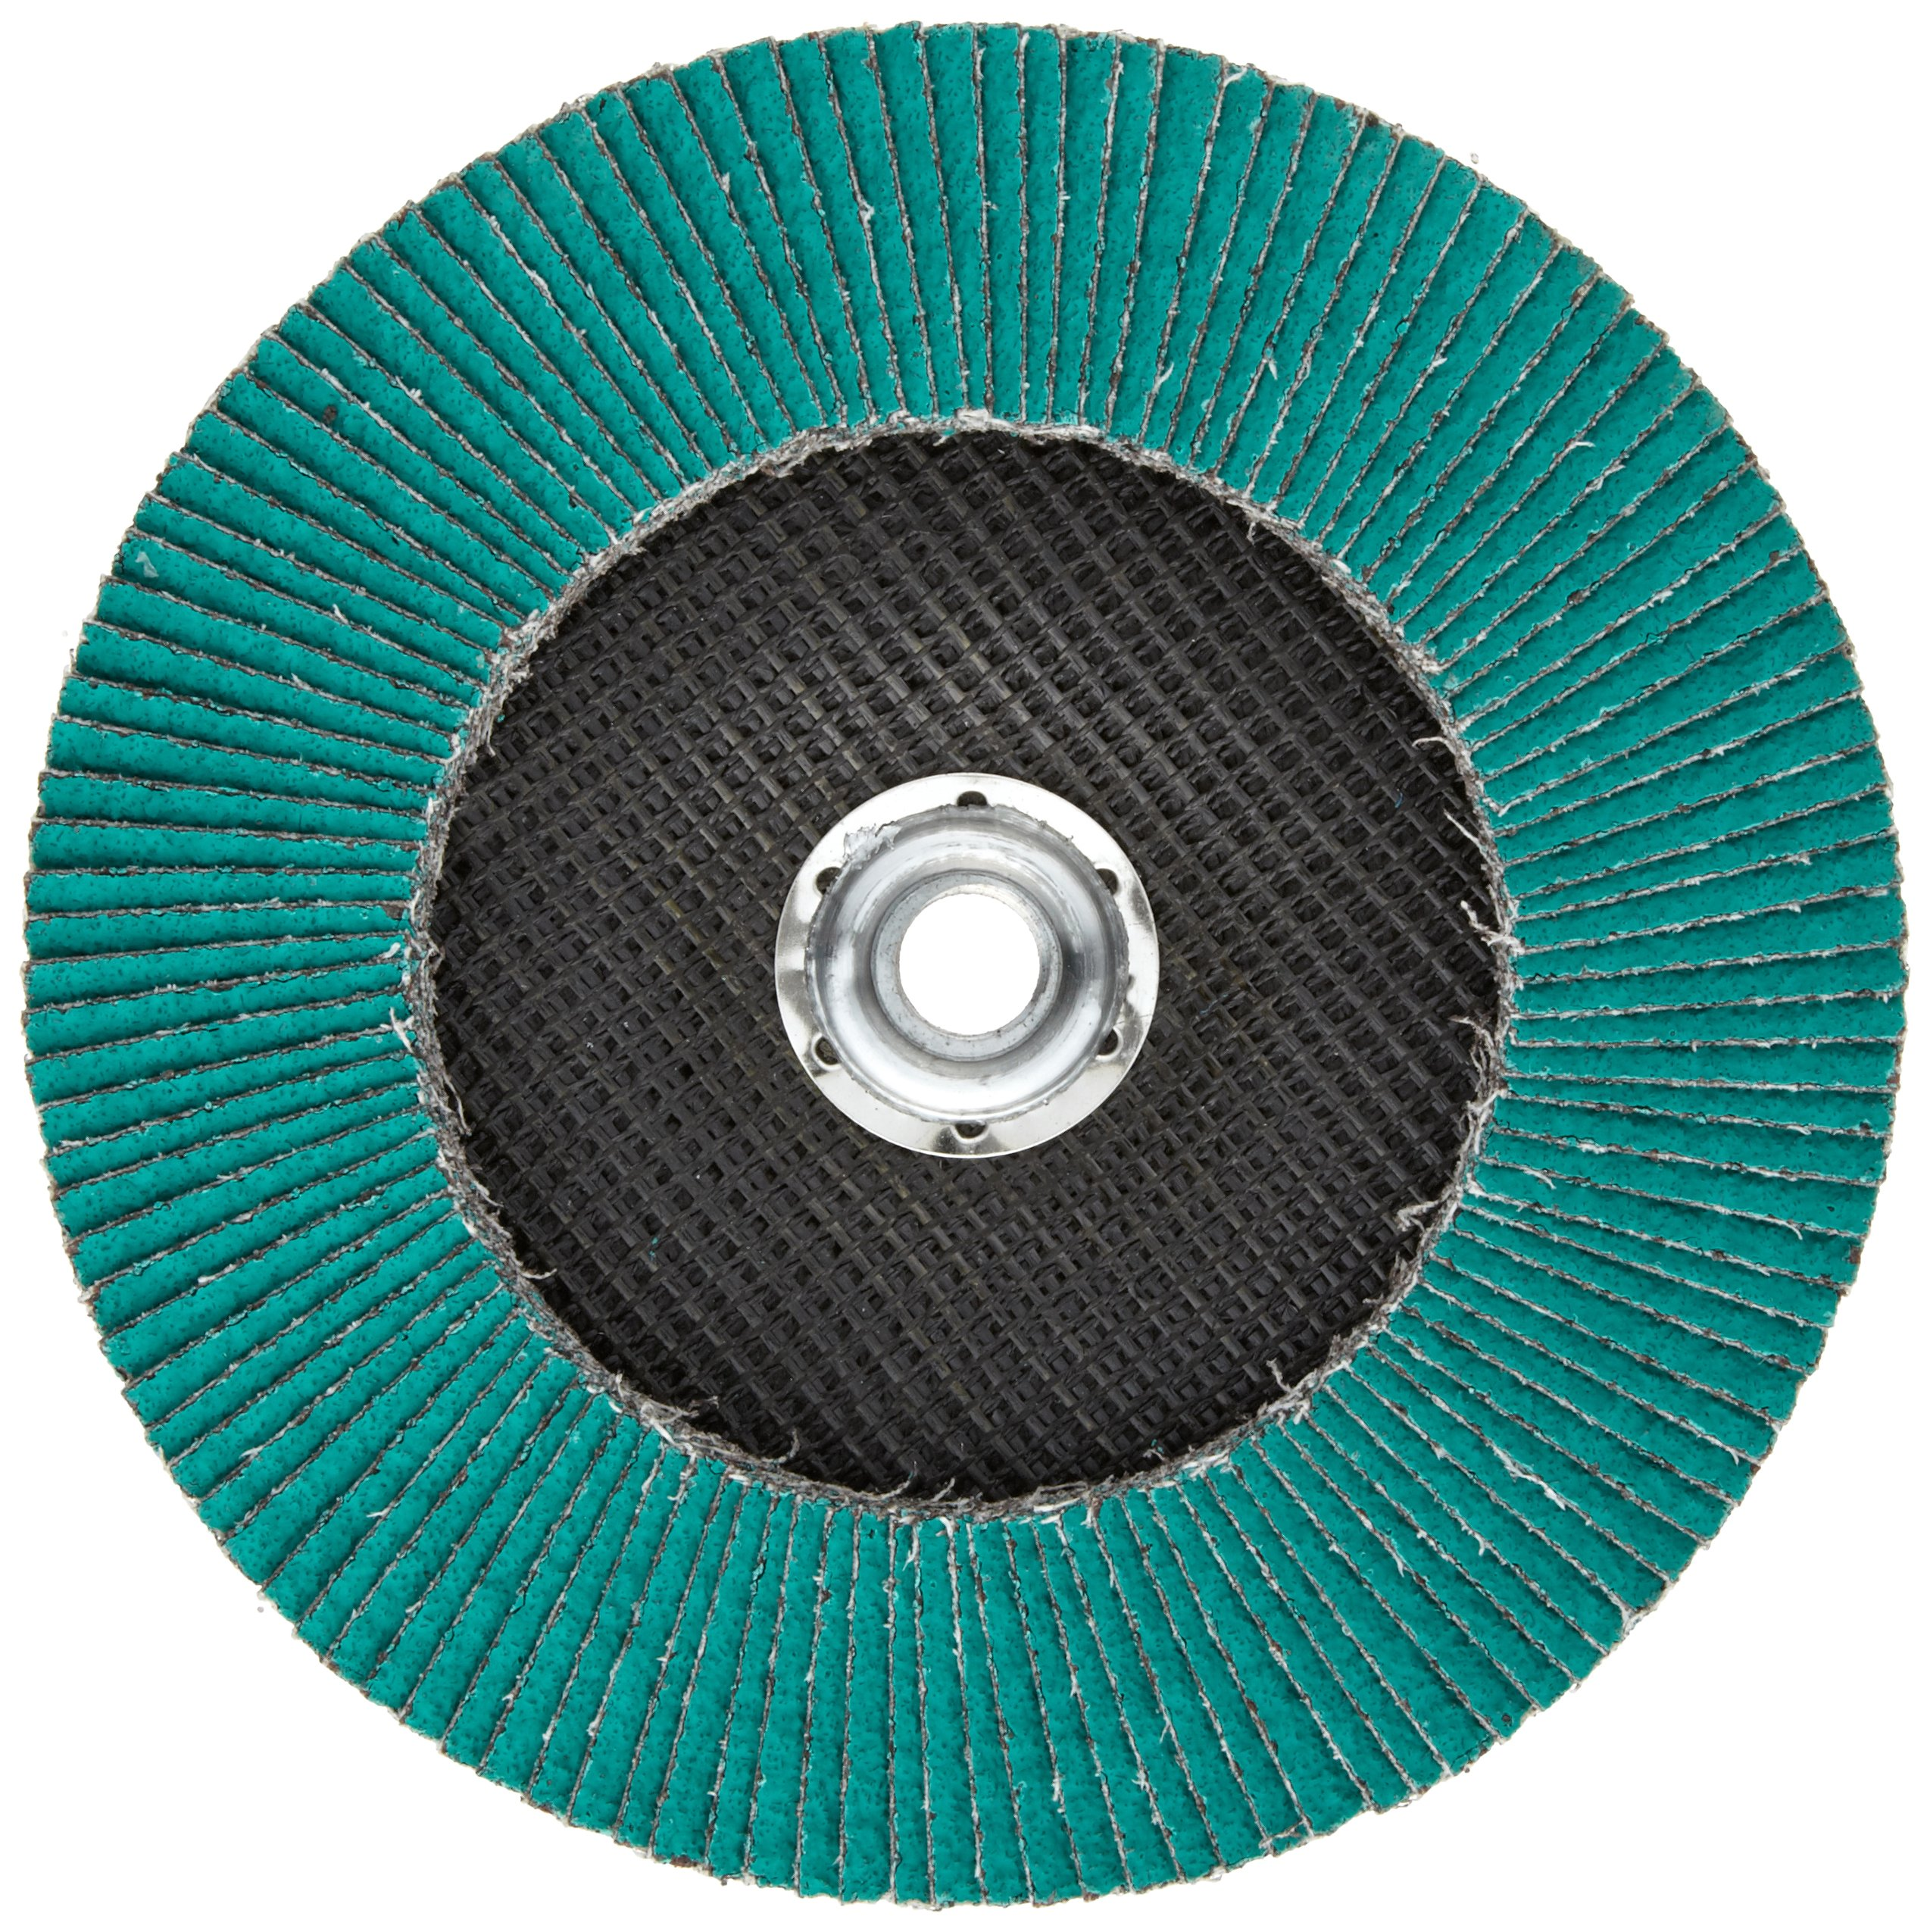 3M Flap Disc 577F, T27 Quick Change, Giant, 7 in x